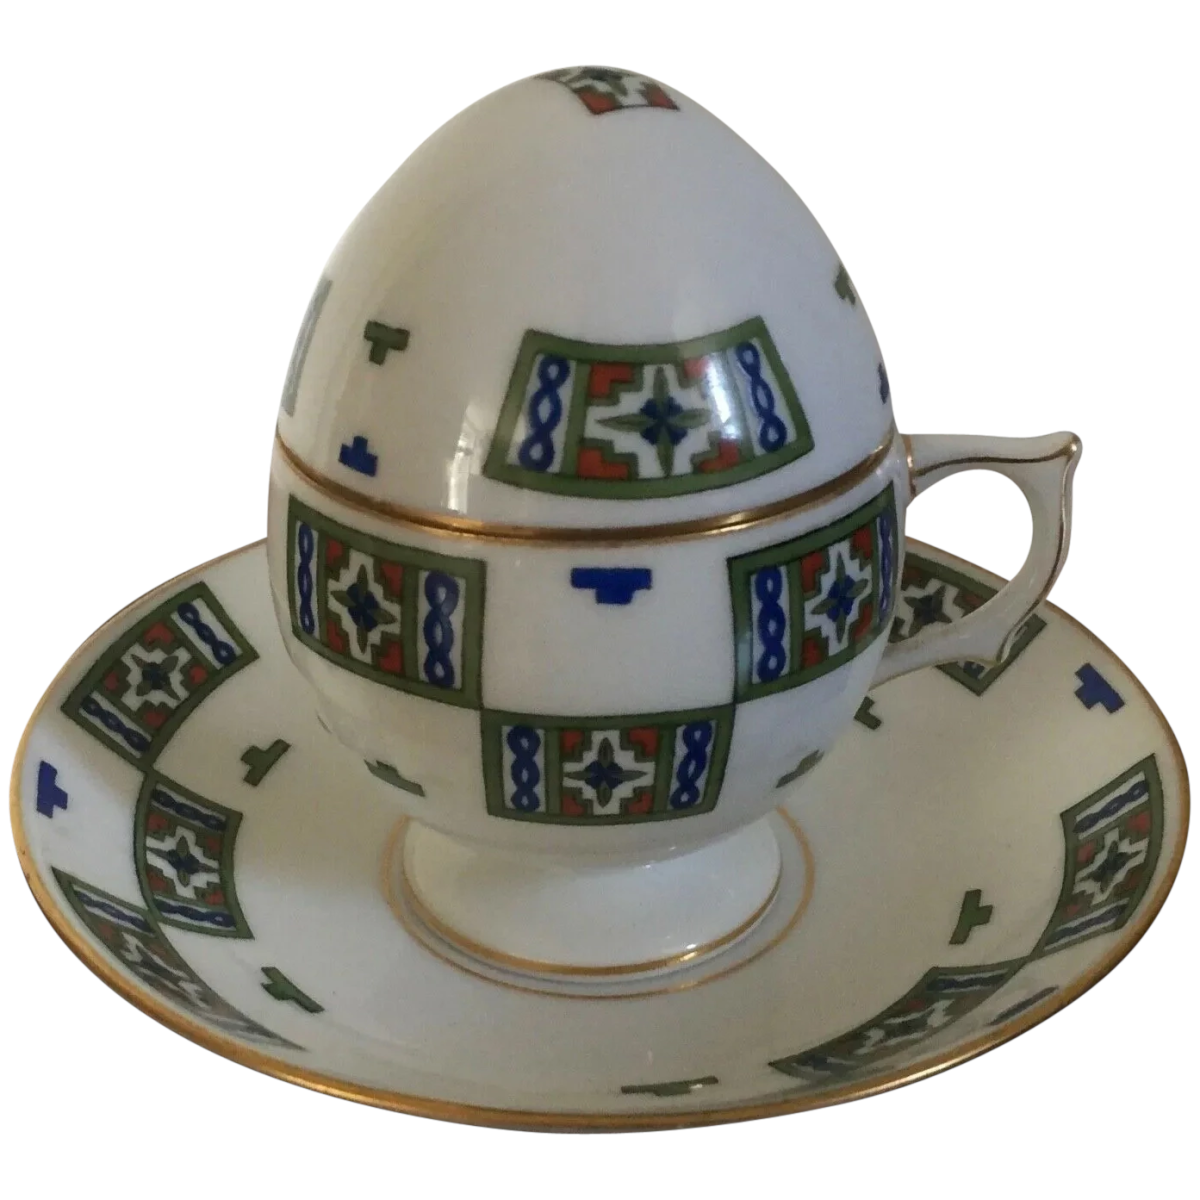 """Russian Kornilow Brothers Tsarist porcelain Imperial Russian egg teacup, cover and saucer, 1900-1910, Aesthetic design. Saucer is 5-1/8"""" dia; cup is 4"""" h, including the lid, $1,295."""